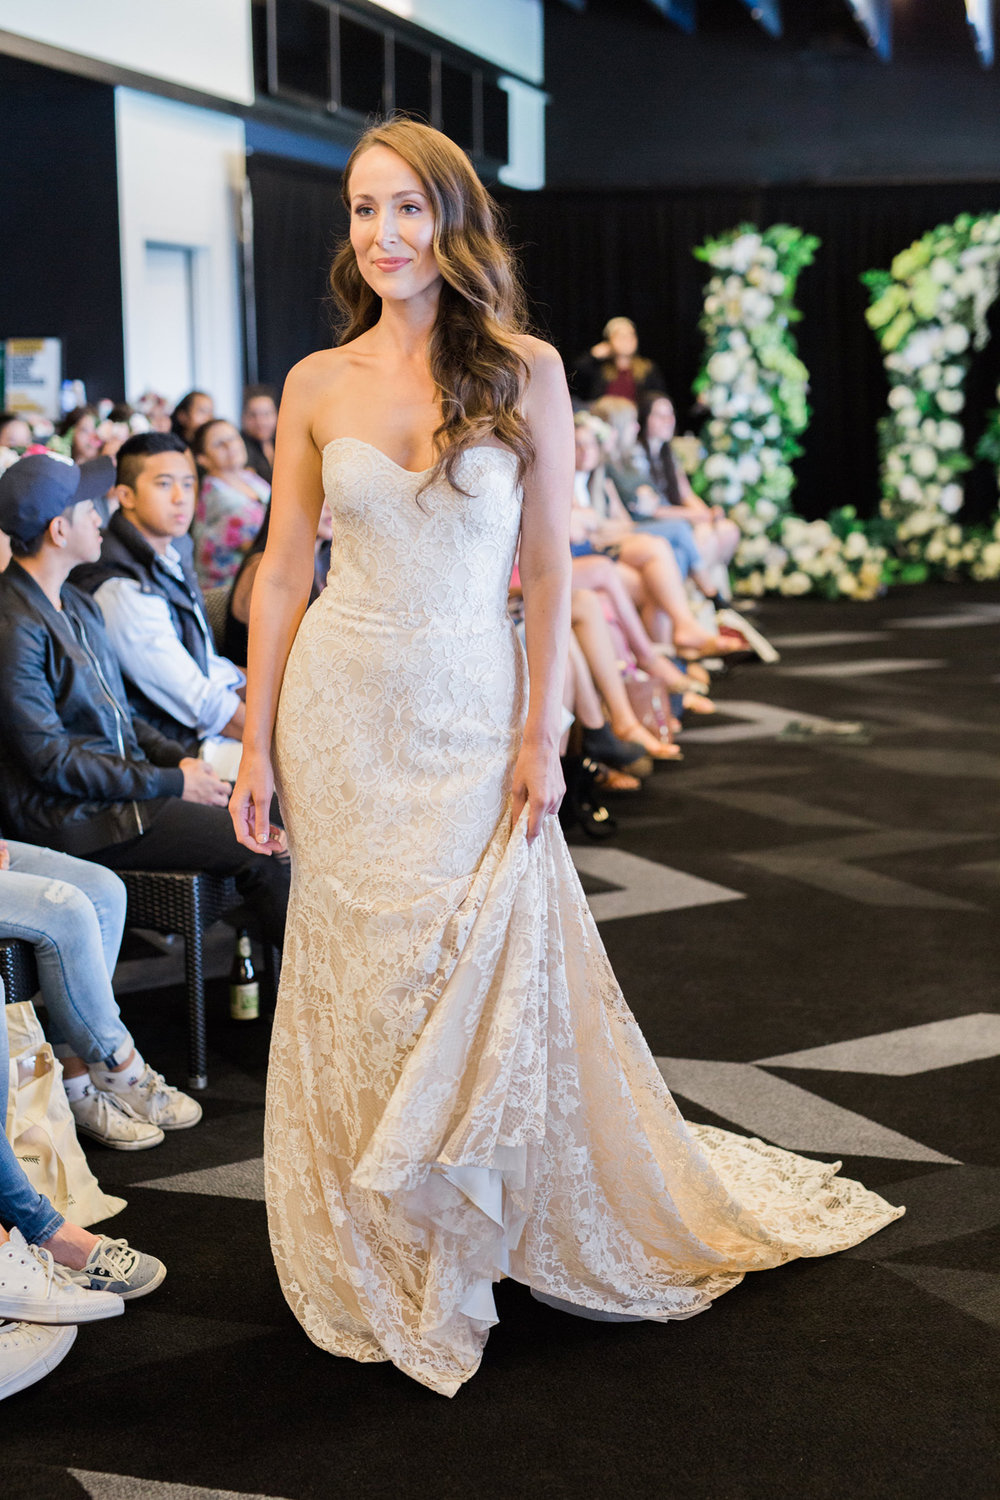 Love-Wedding-Festival-Sydney-Wedding-Gown-Angela-Osagie-35.jpg